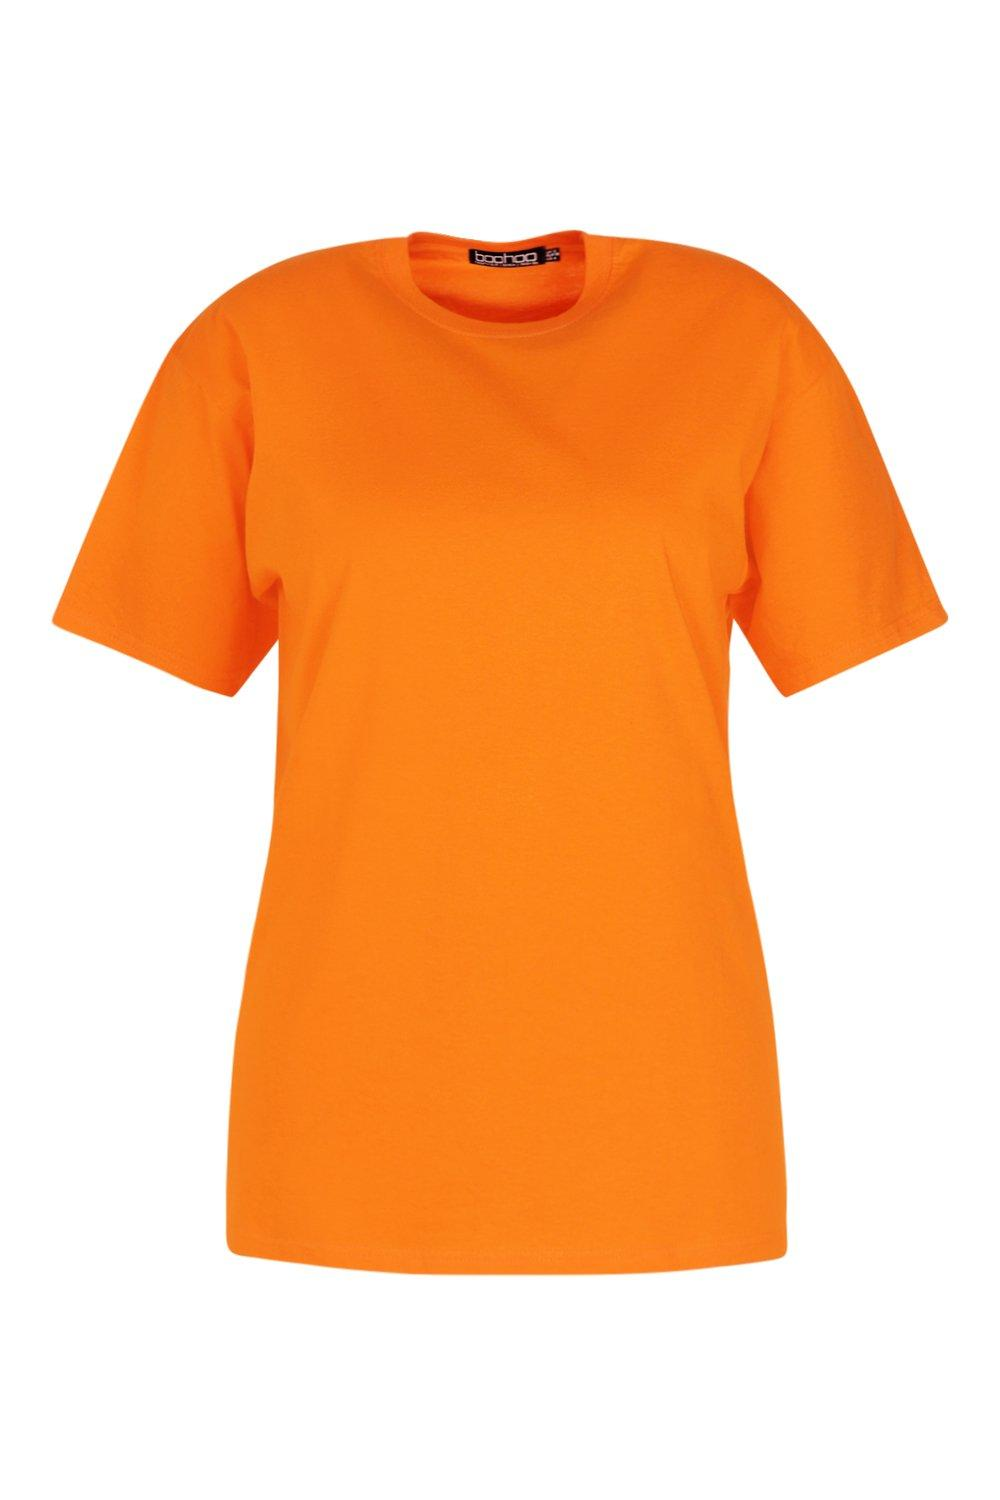 Boyfriend Plus Oversized Tee Oversized Plus Boyfriend orange qaIwZW07g